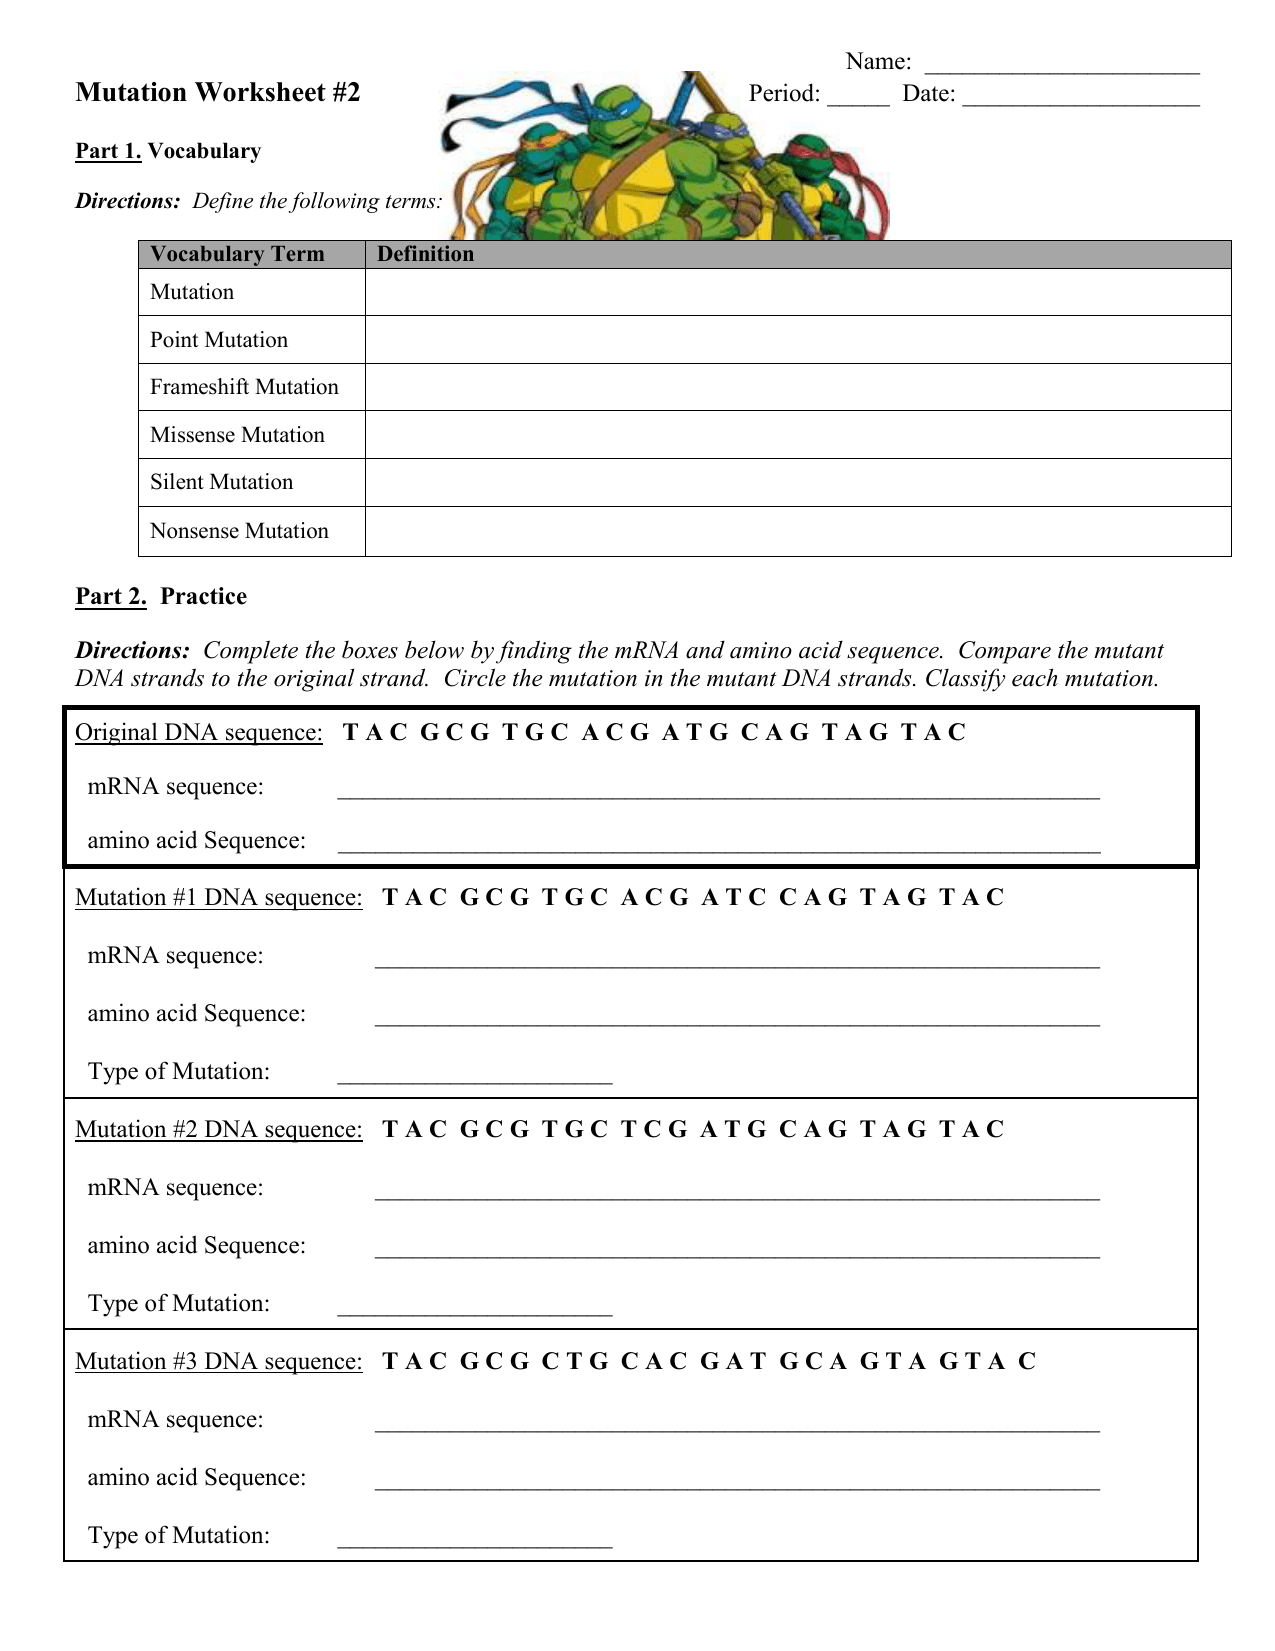 Genetic Mutation Worksheet Answer Key